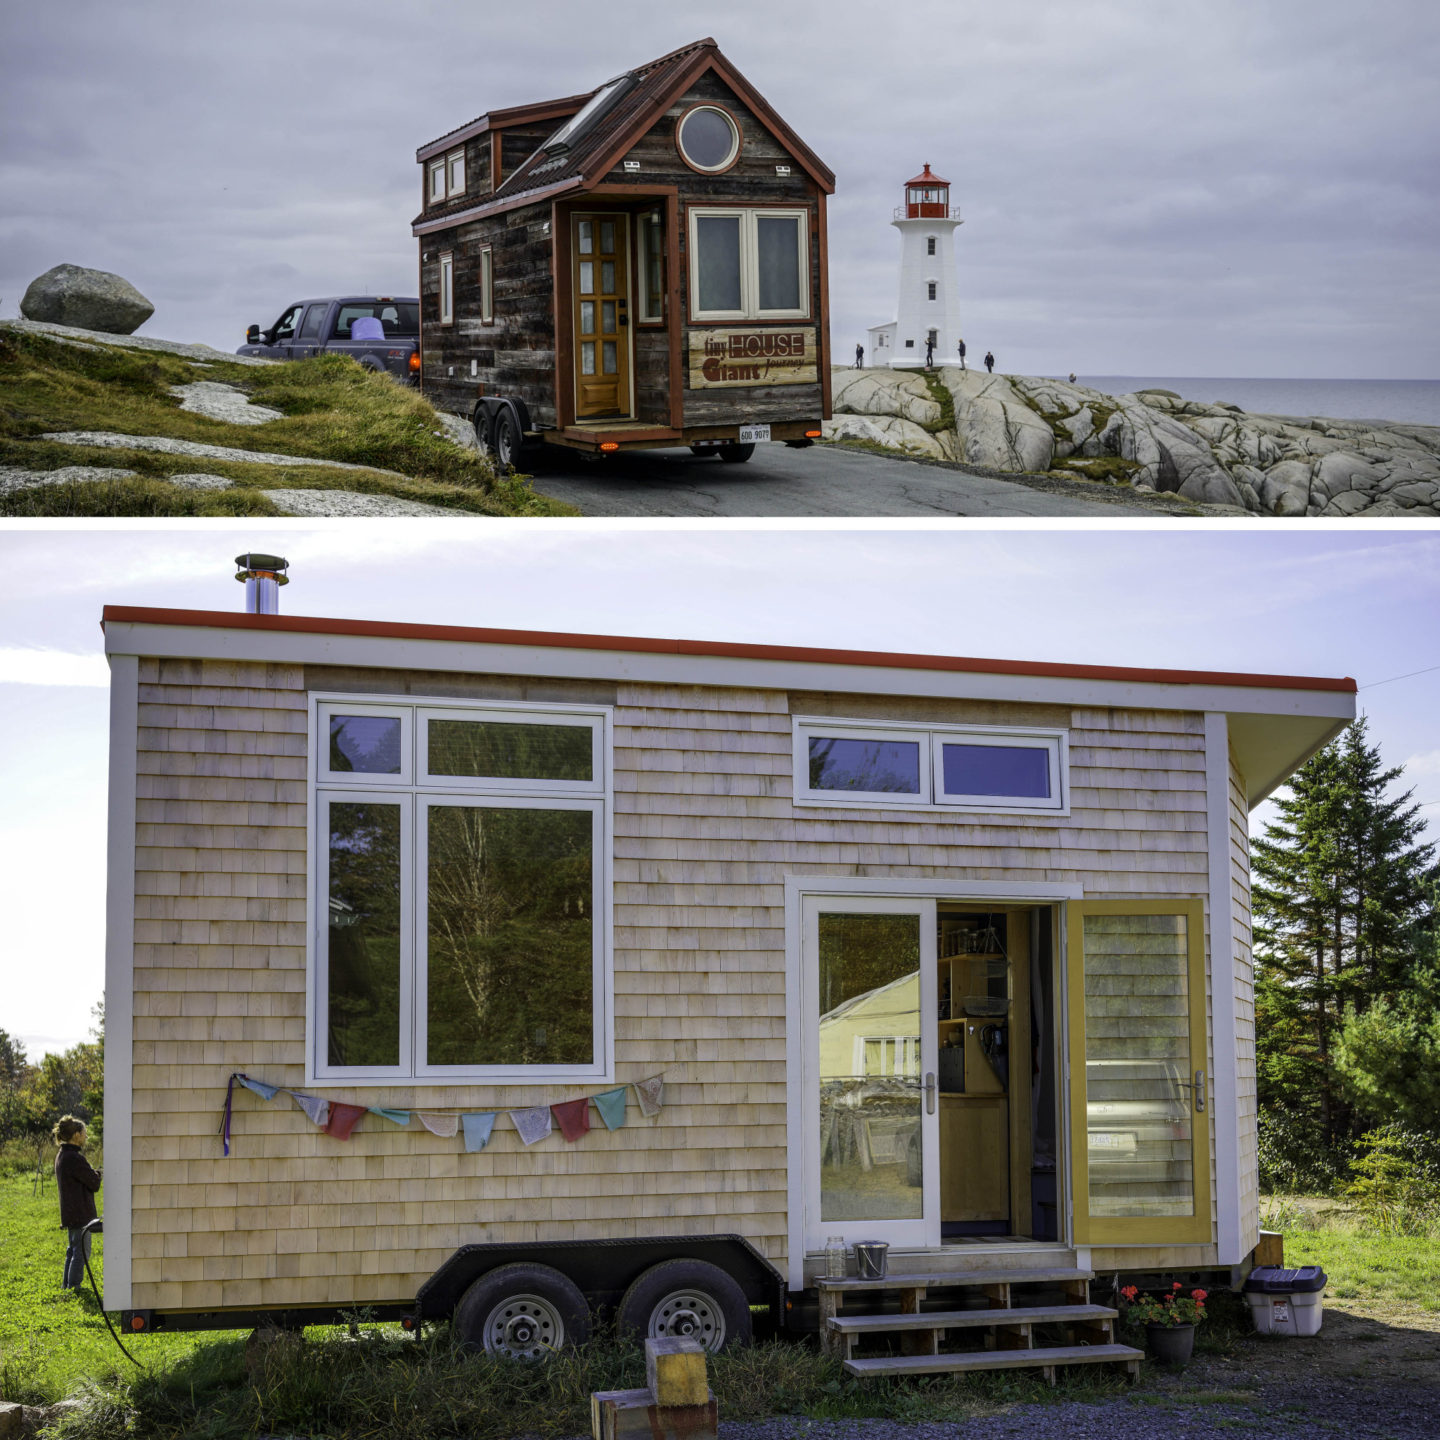 Nova Scotia: Full Moon Shelters & Salty Hikes